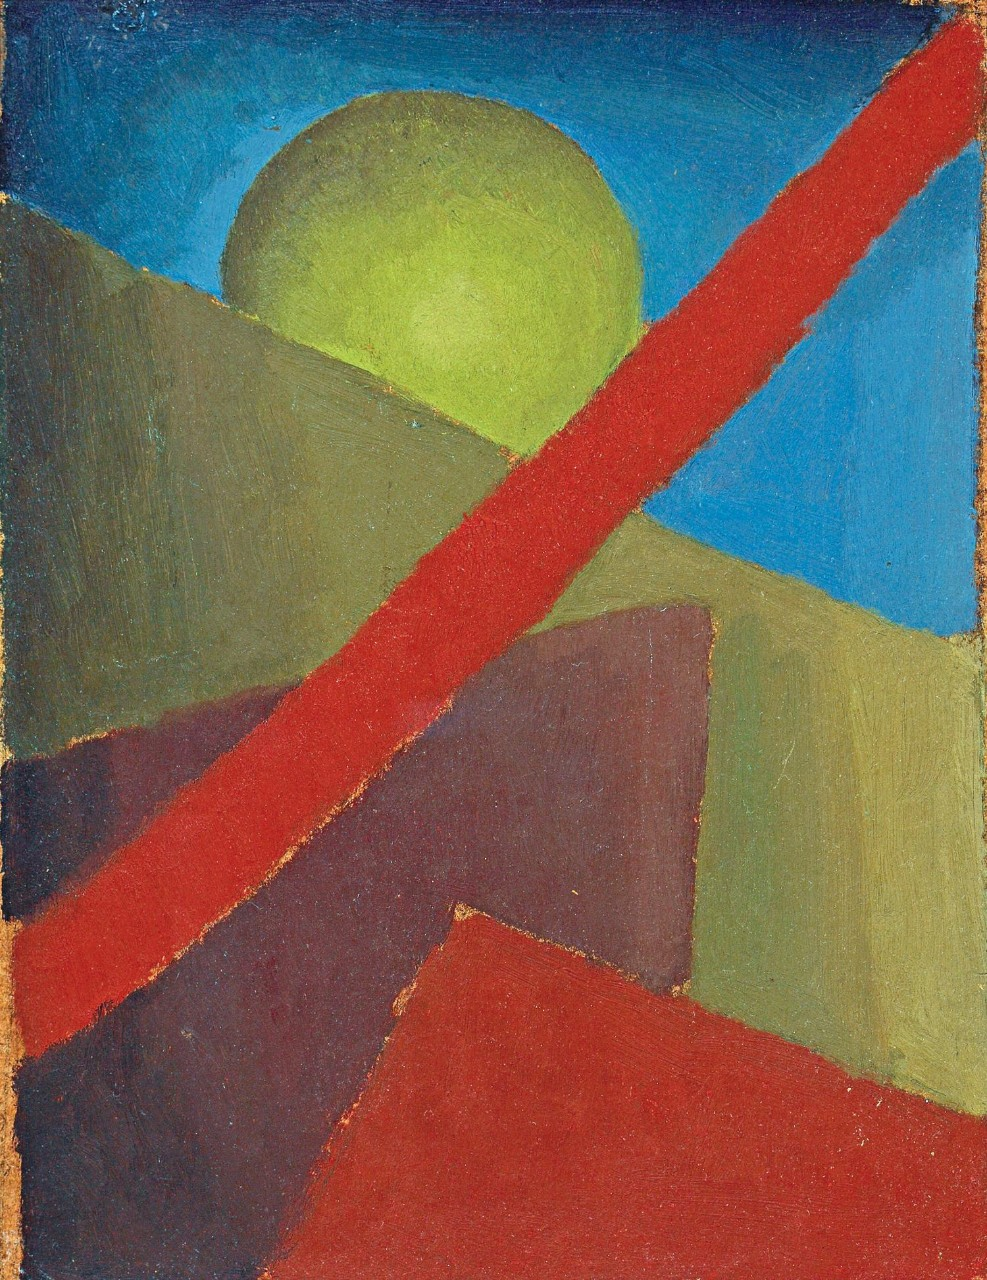 Esteban Lisa (1895–1983), Composición (Composition), c. 1935 (front) _ oil on cardboard, 30 x 23 cm, private collection © Fundación Esteban Lisa